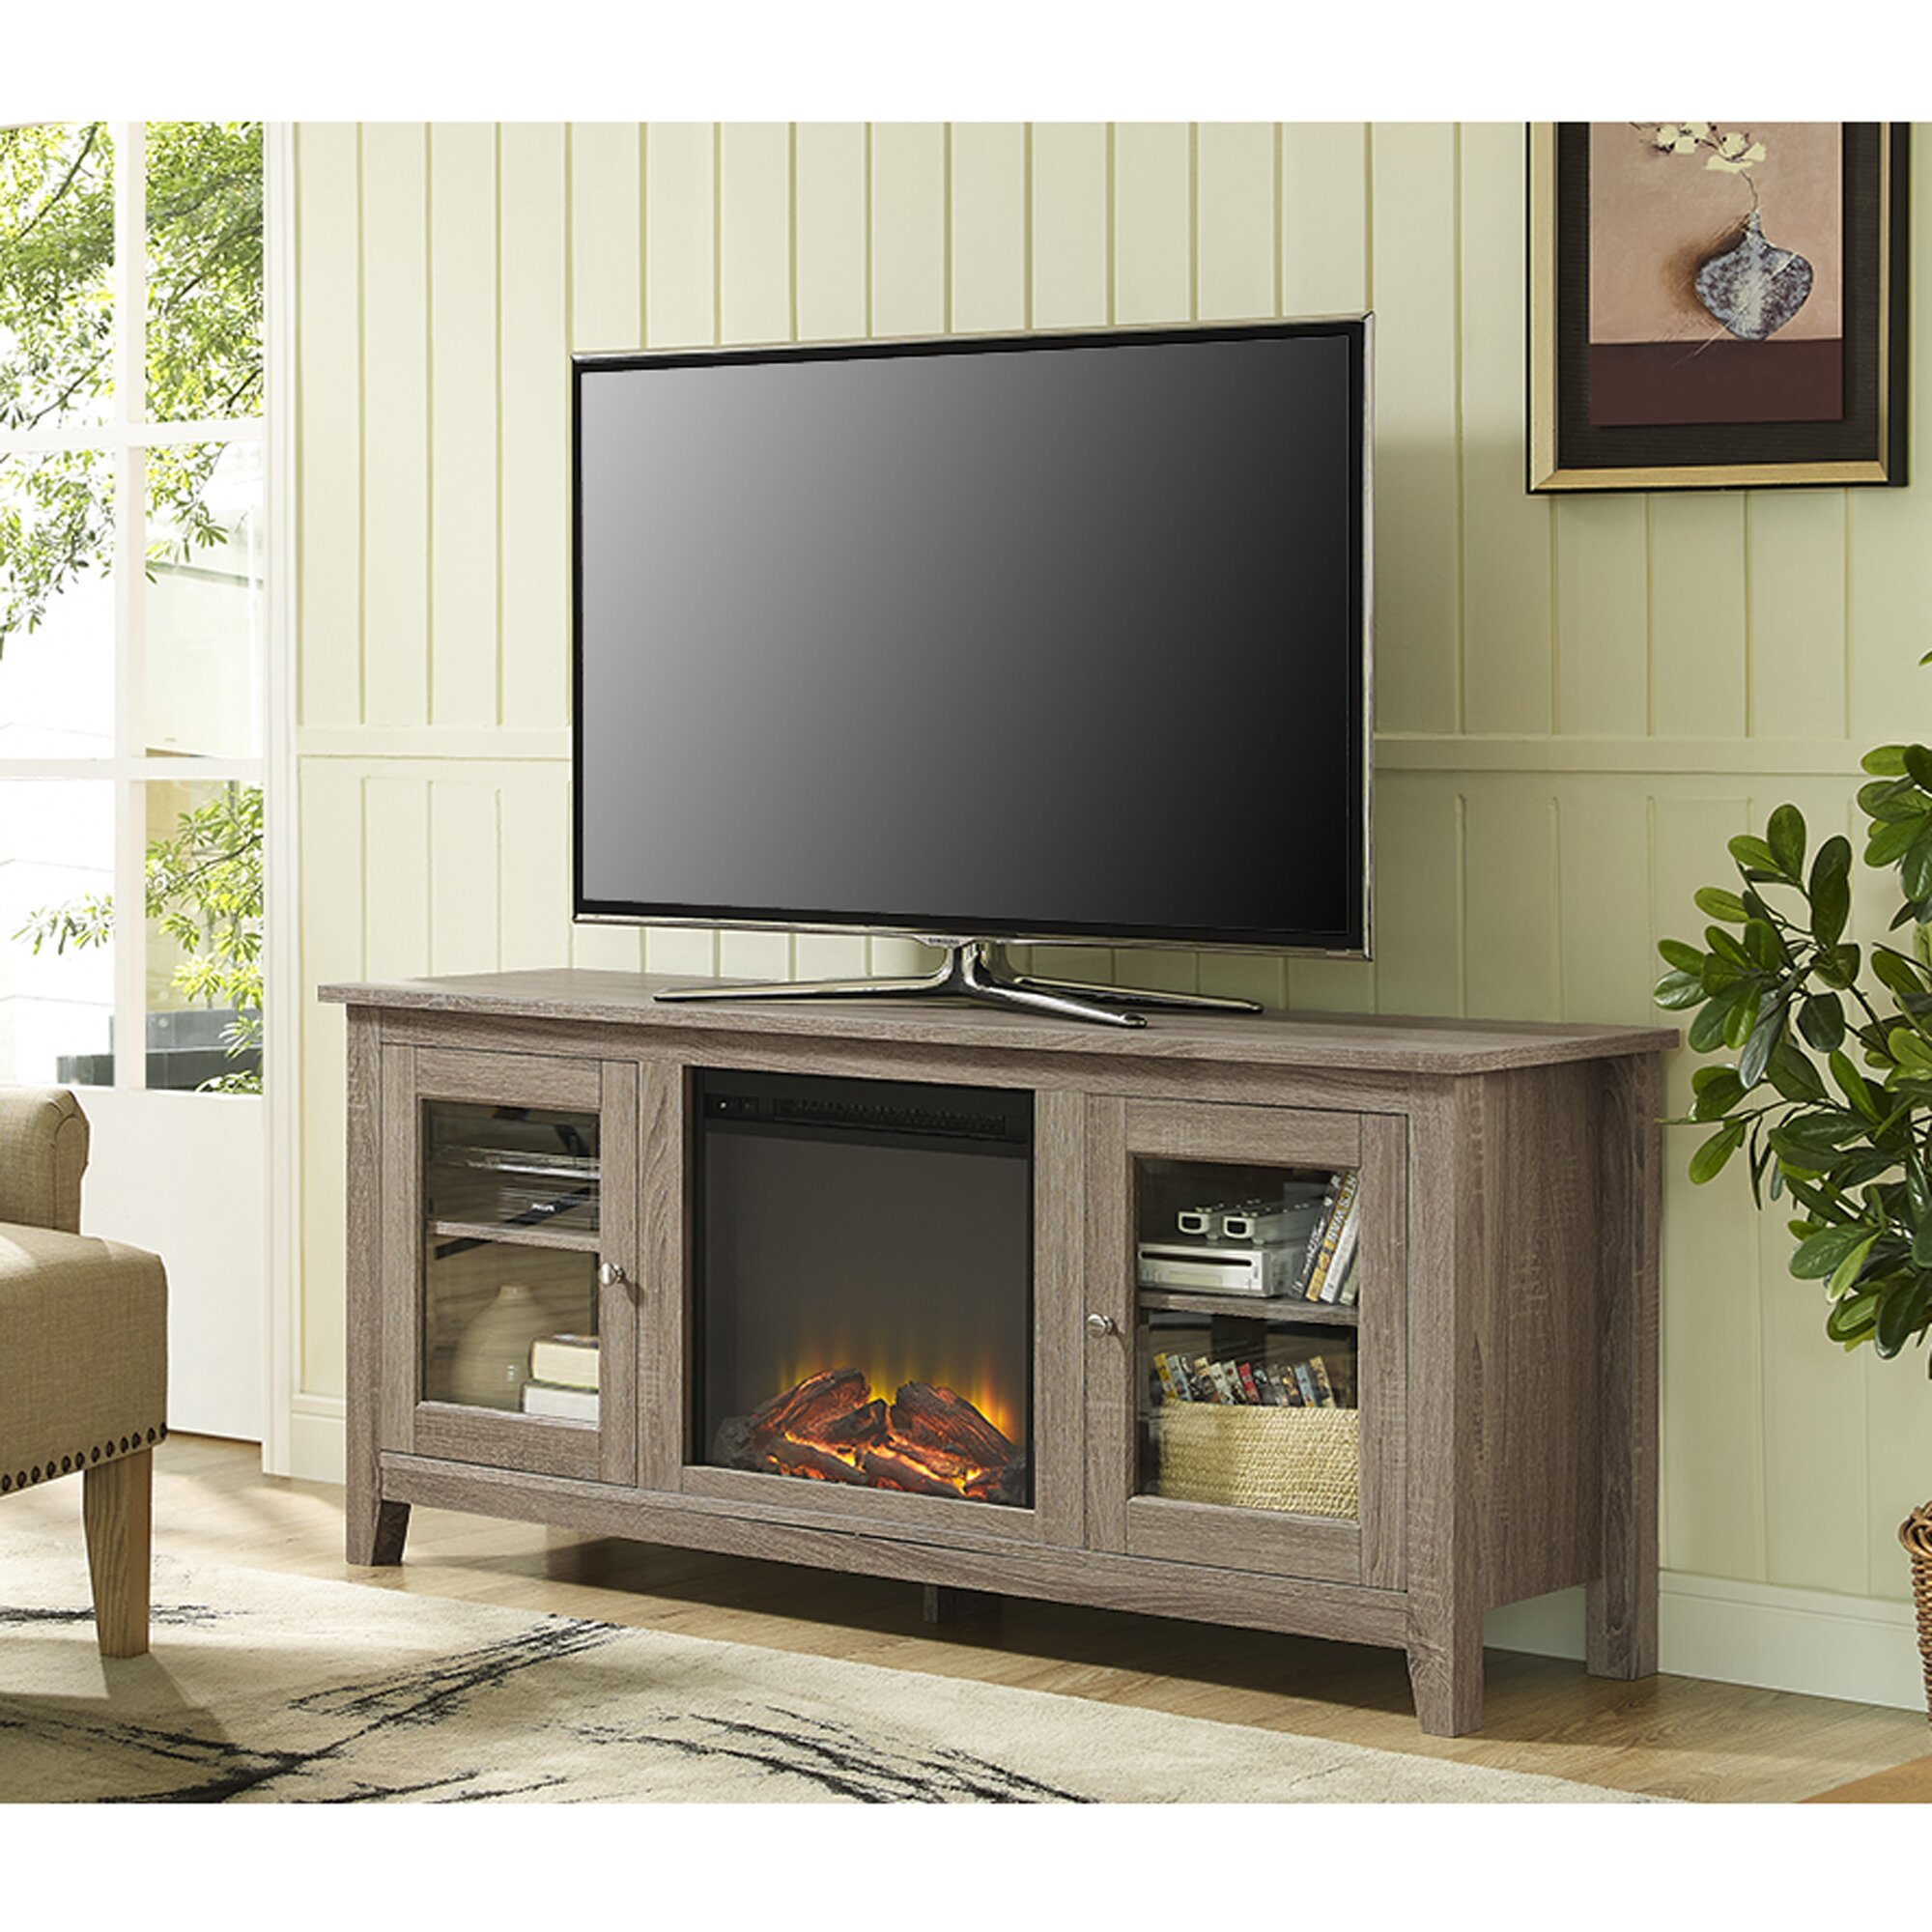 brayden studio andy tv stand with electric fireplace reviews wayfair. Black Bedroom Furniture Sets. Home Design Ideas